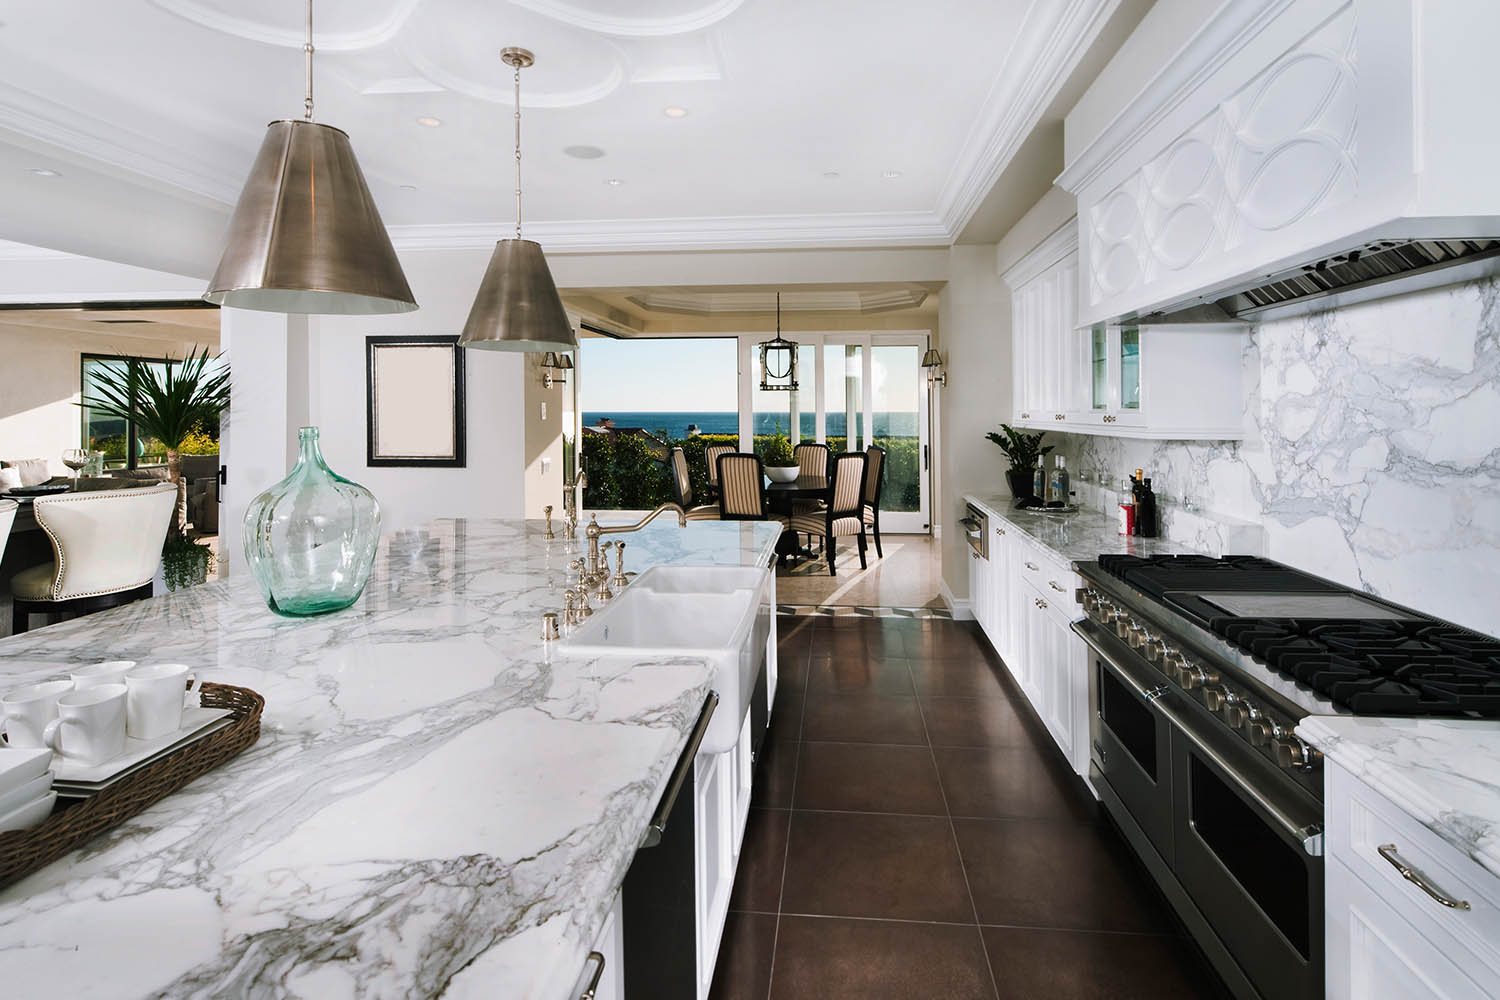 The Marble Galley Kitchen